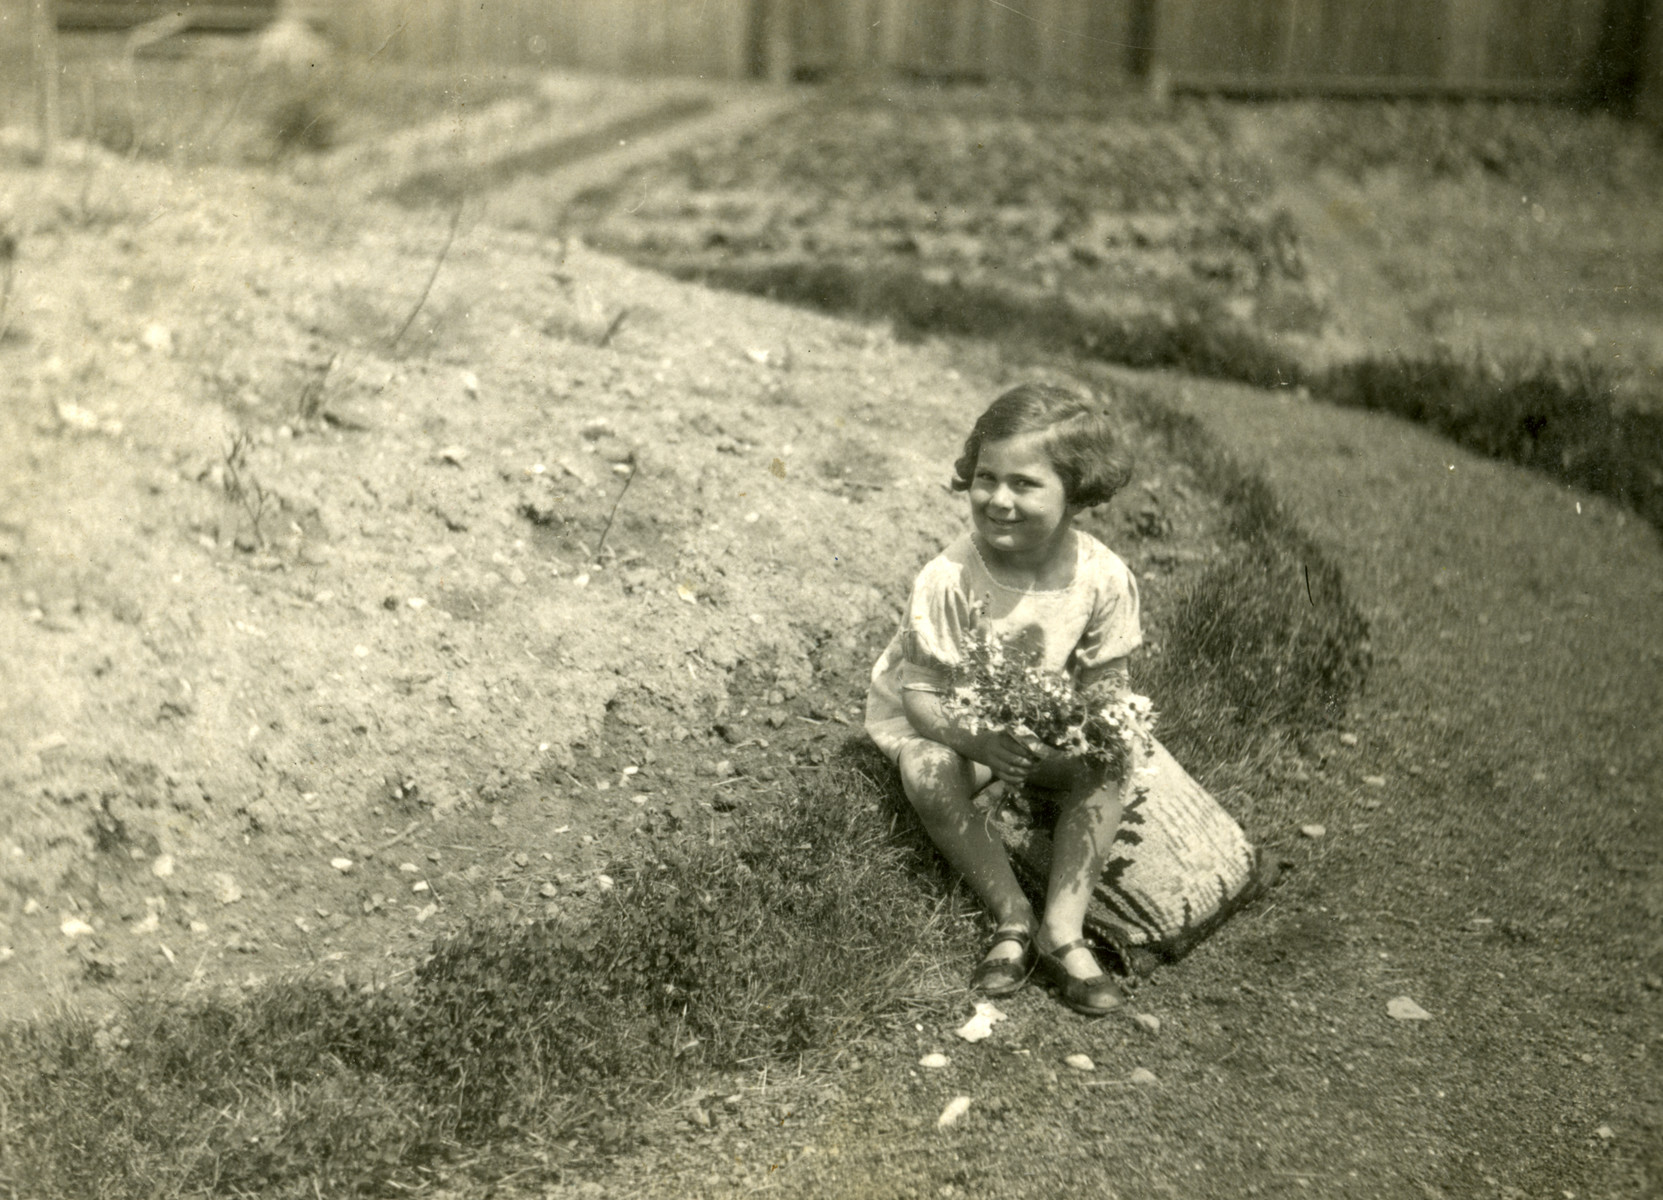 Suzanne Sigmund sits by a path holding a bouquet of flowers.